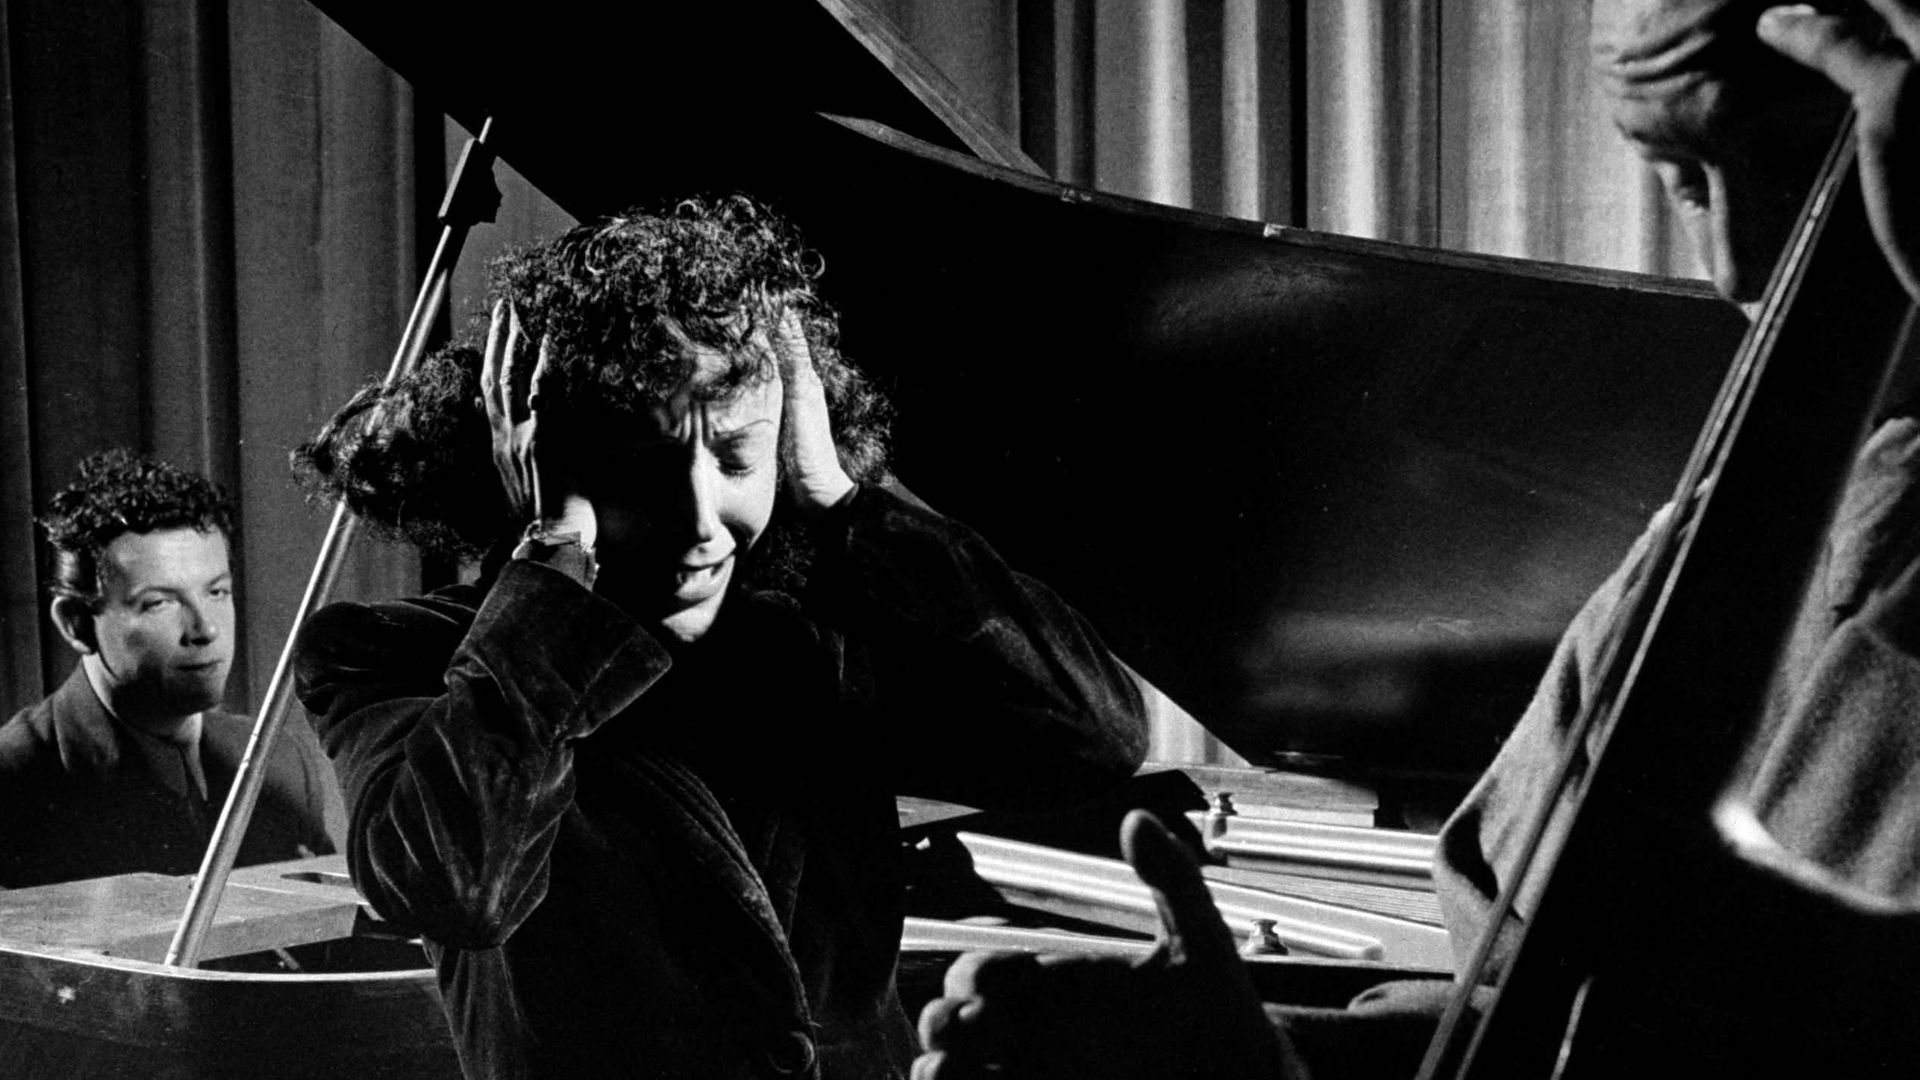 Edith Piaf holding her hands to her head while performing - Credit: The LIFE Picture Collection via